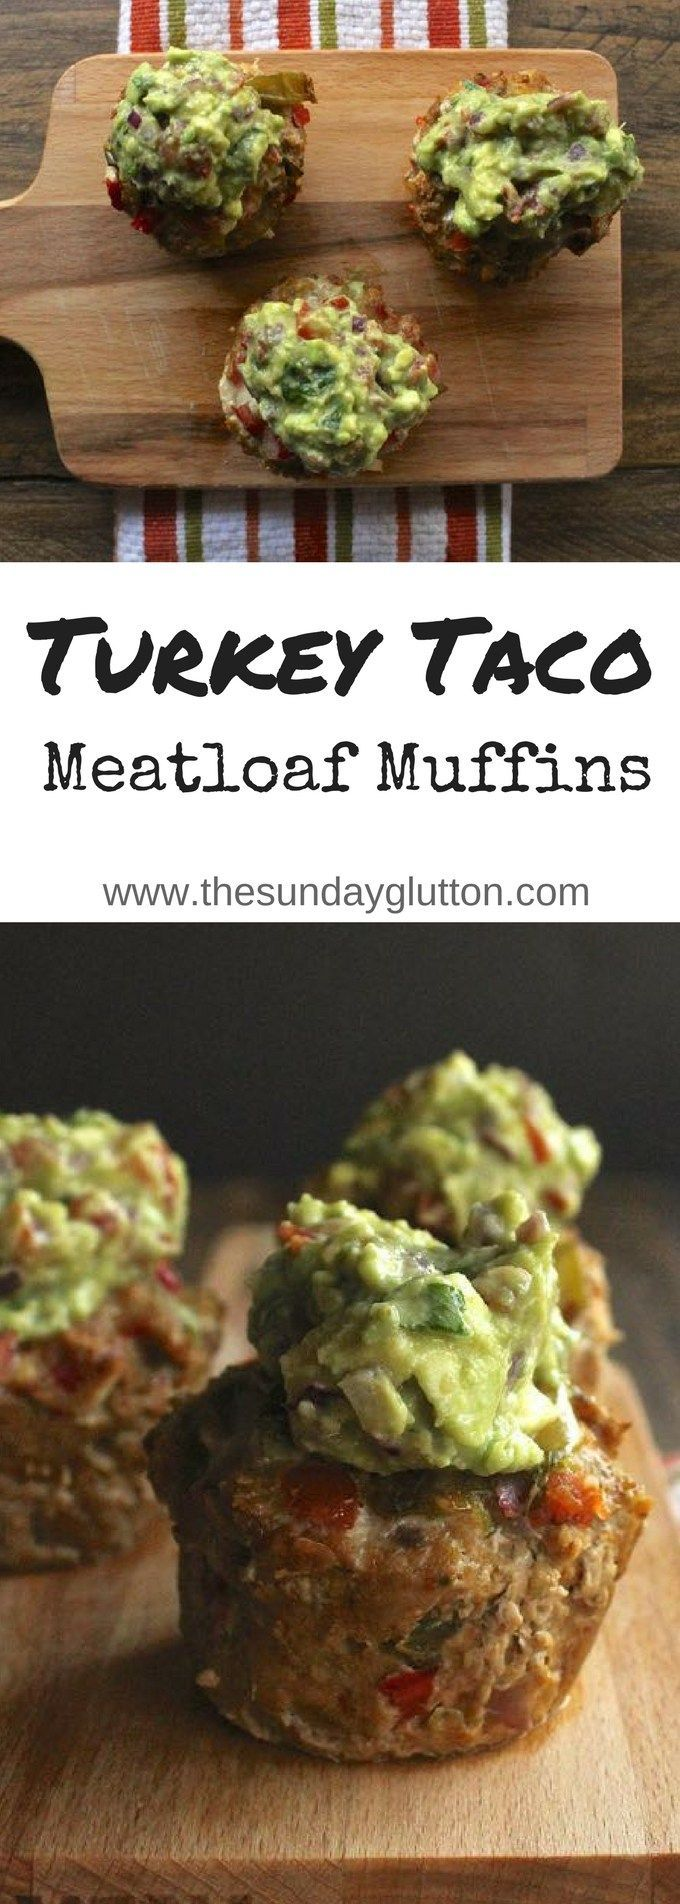 """These Turkey Taco Meatloaf Muffins are super moist and flavorful thanks to fresh tomatillo salsa. Topped with guacamole """"frosting"""", they're a kid-friendly, adult-loved, individual meatloaf dinner!"""